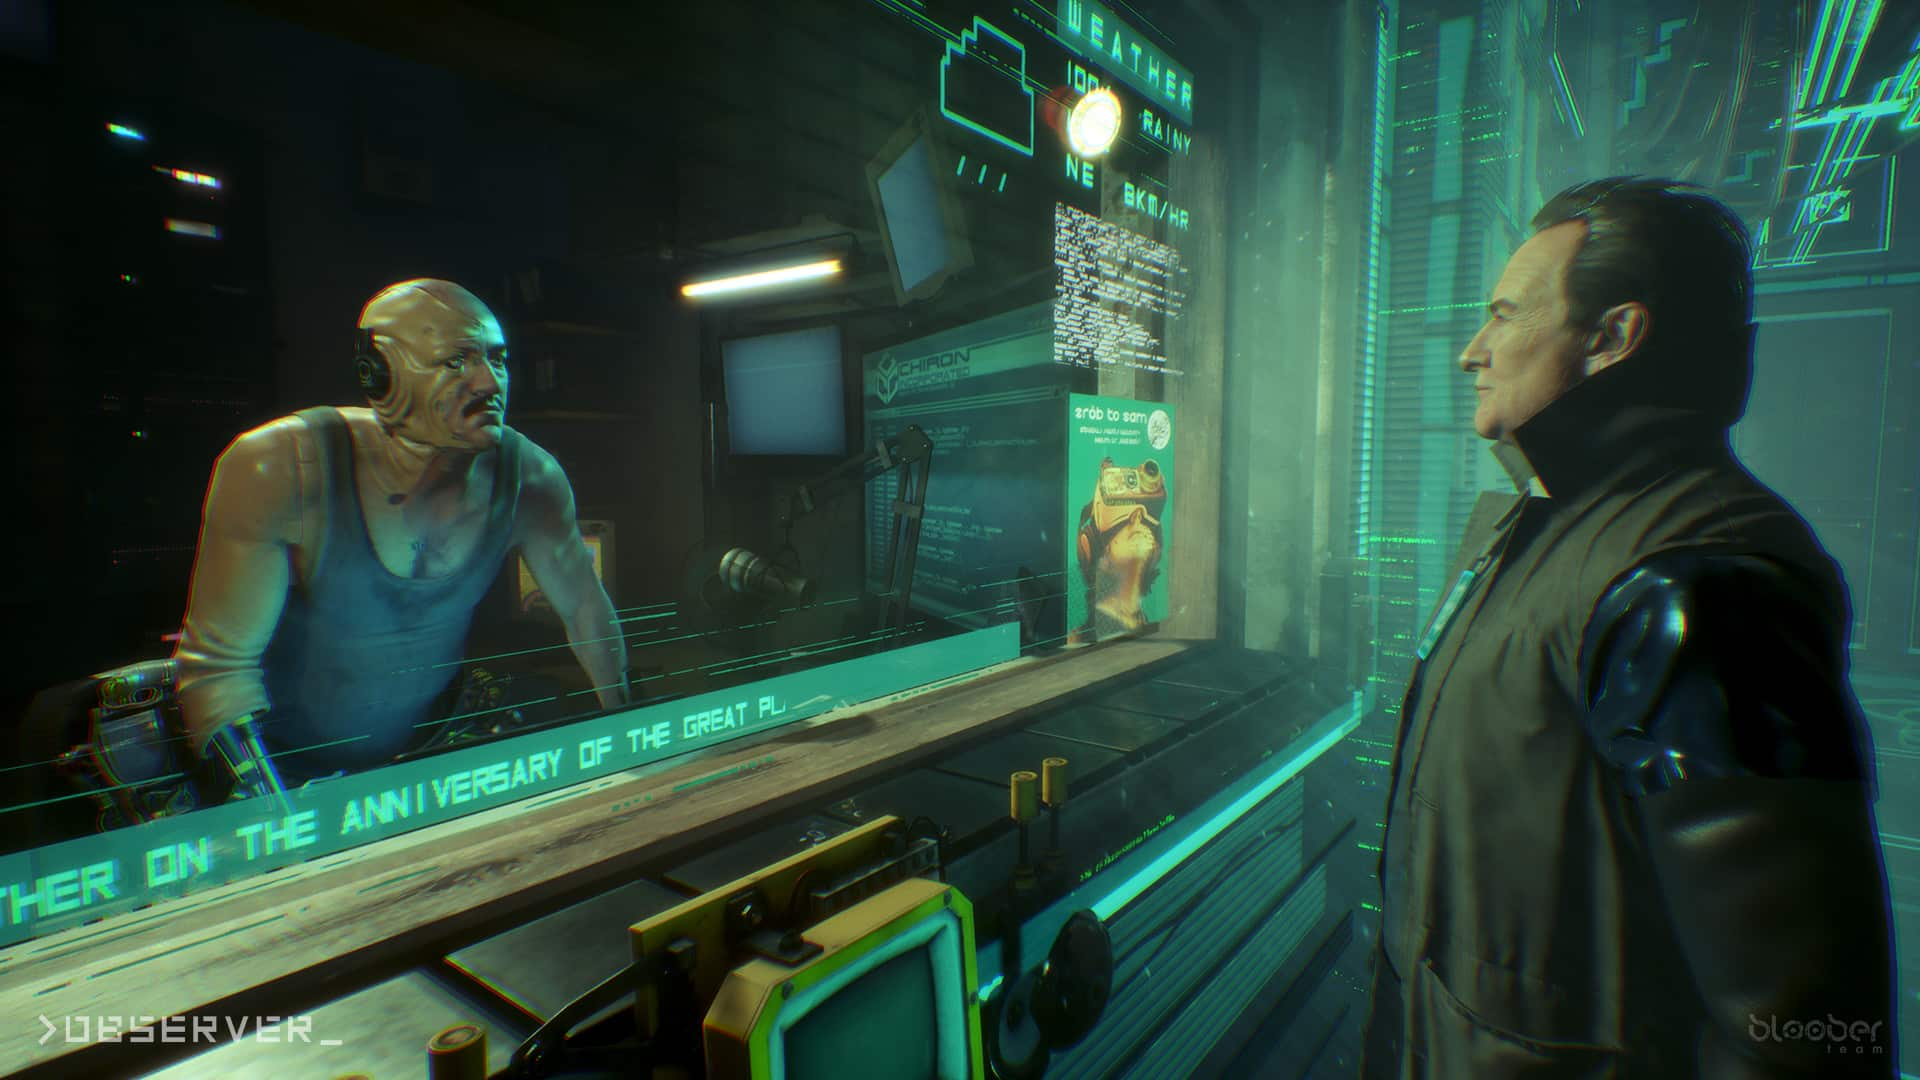 doubt reality itself in Observer, cyberpunk horror mystery from Bloober Team. Observer System Redux on PlayStation 5, Xbox Series X